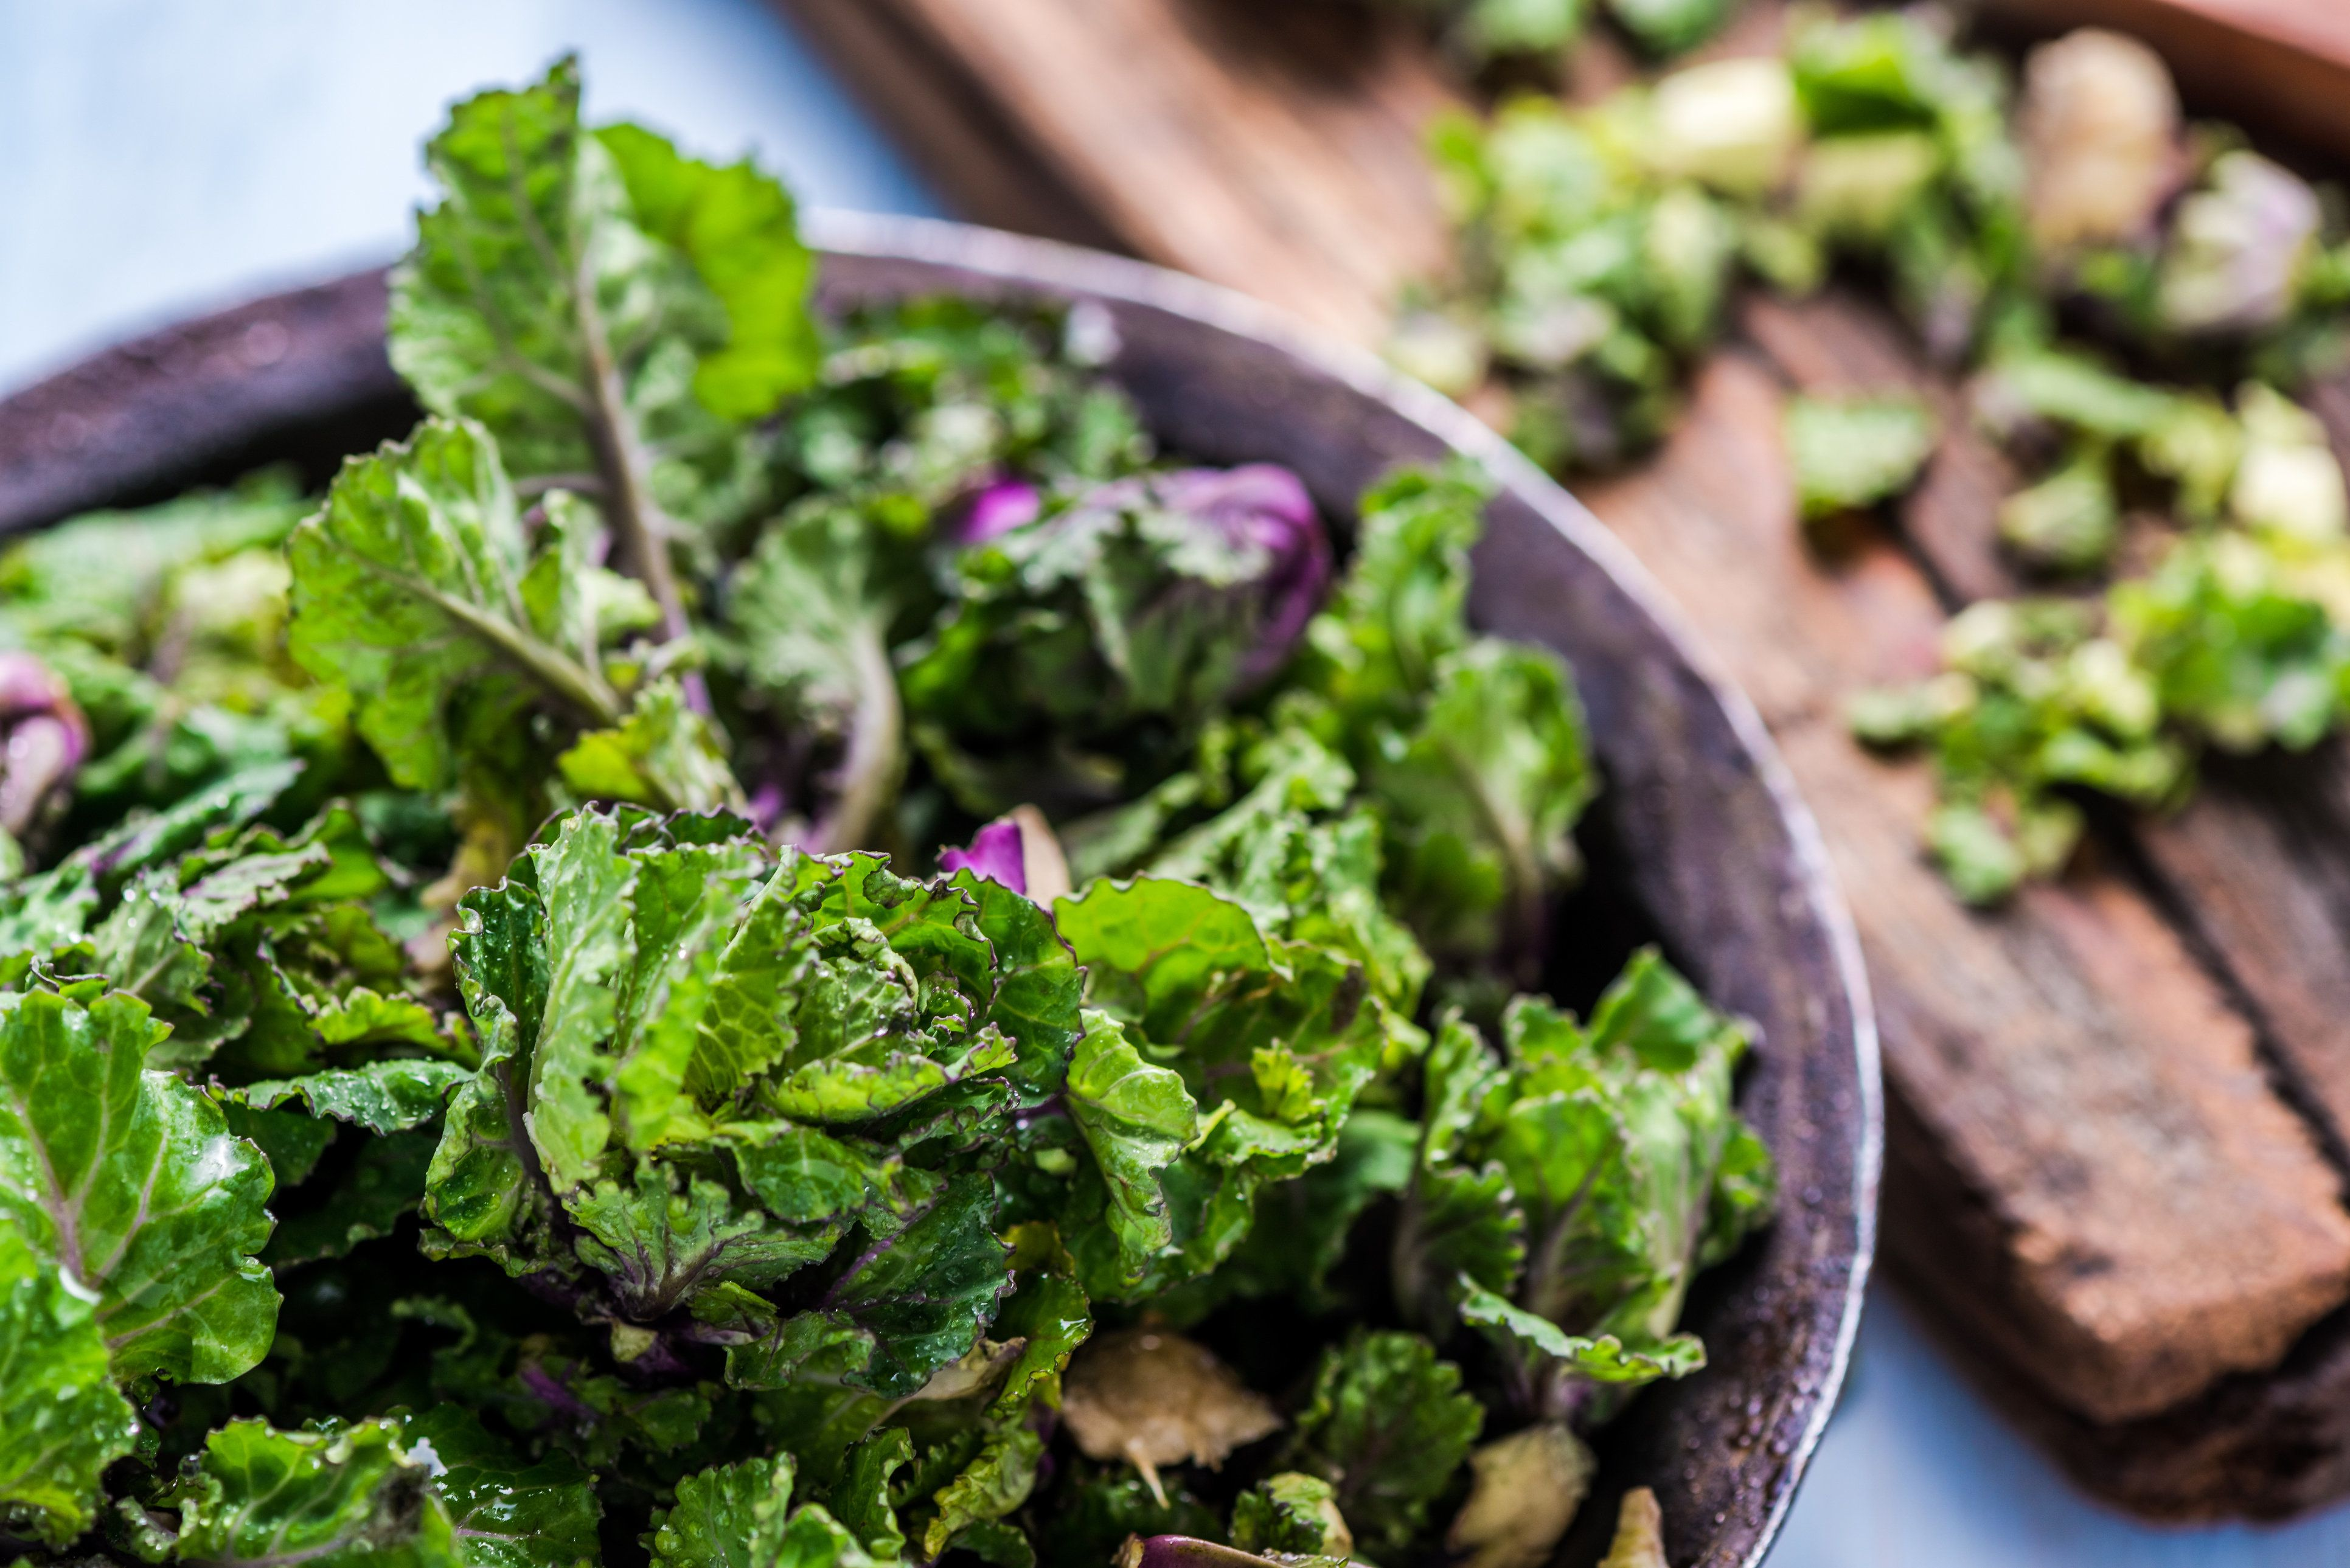 Lutein, a protein found in leafy greens, may support cognitive function and brain